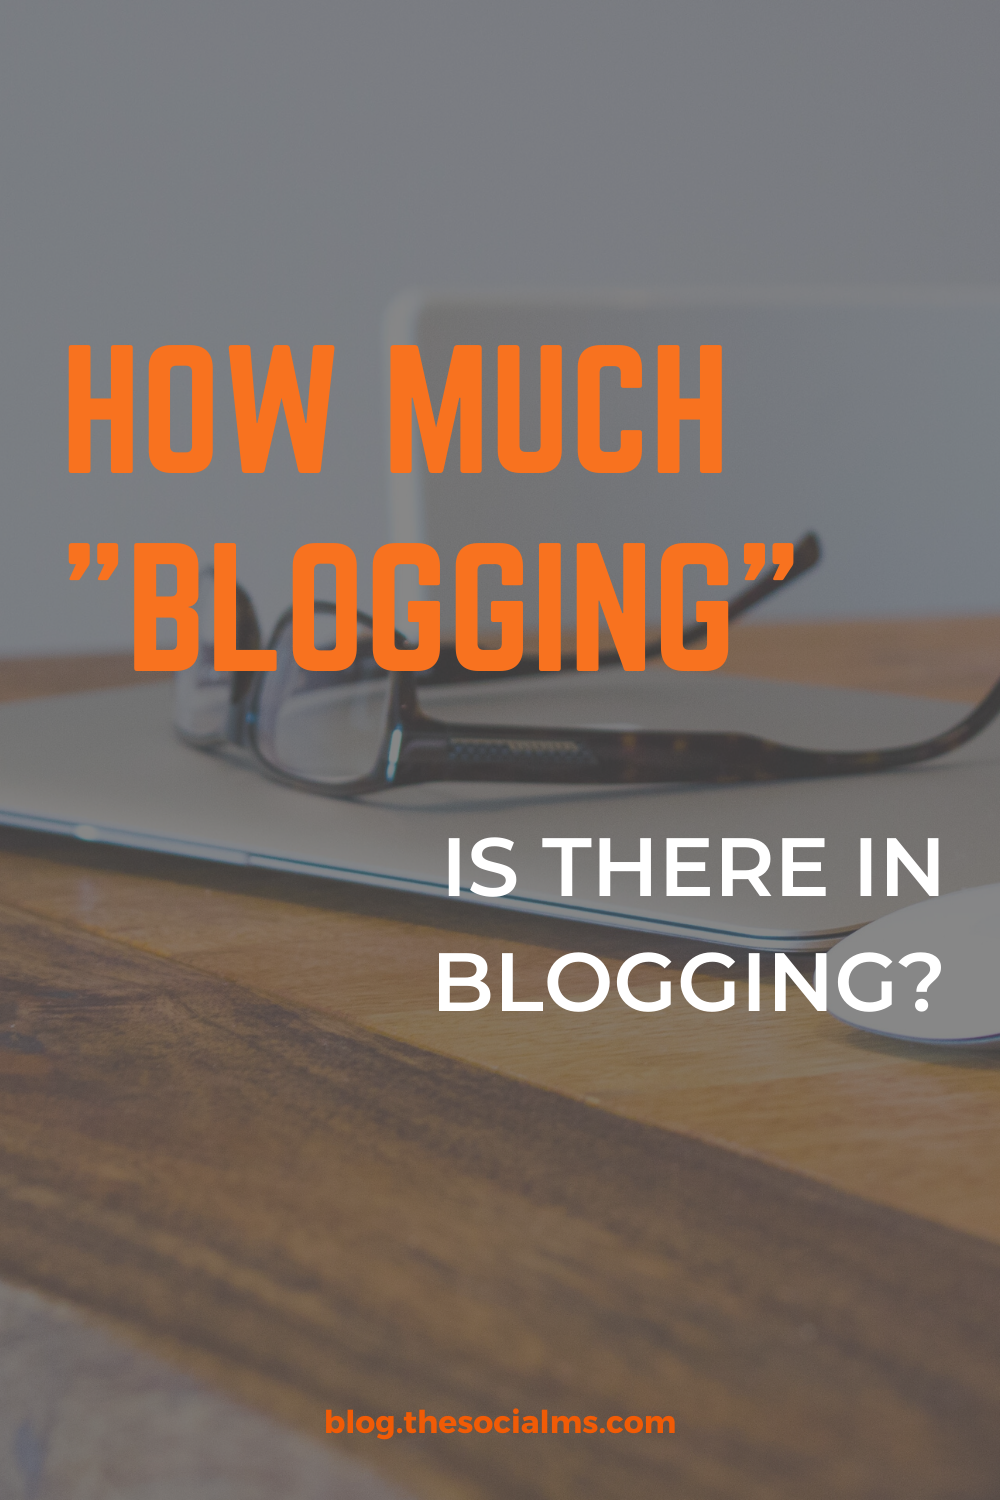 Do you know how a blogger spends his/her time? If you are not a blogger, your perception most likely is far away from the reality of blogging. Here is what blogging is about. #bloggingtips #bloggingforbeginners #startablog #blogging101 #bloggingbusiness